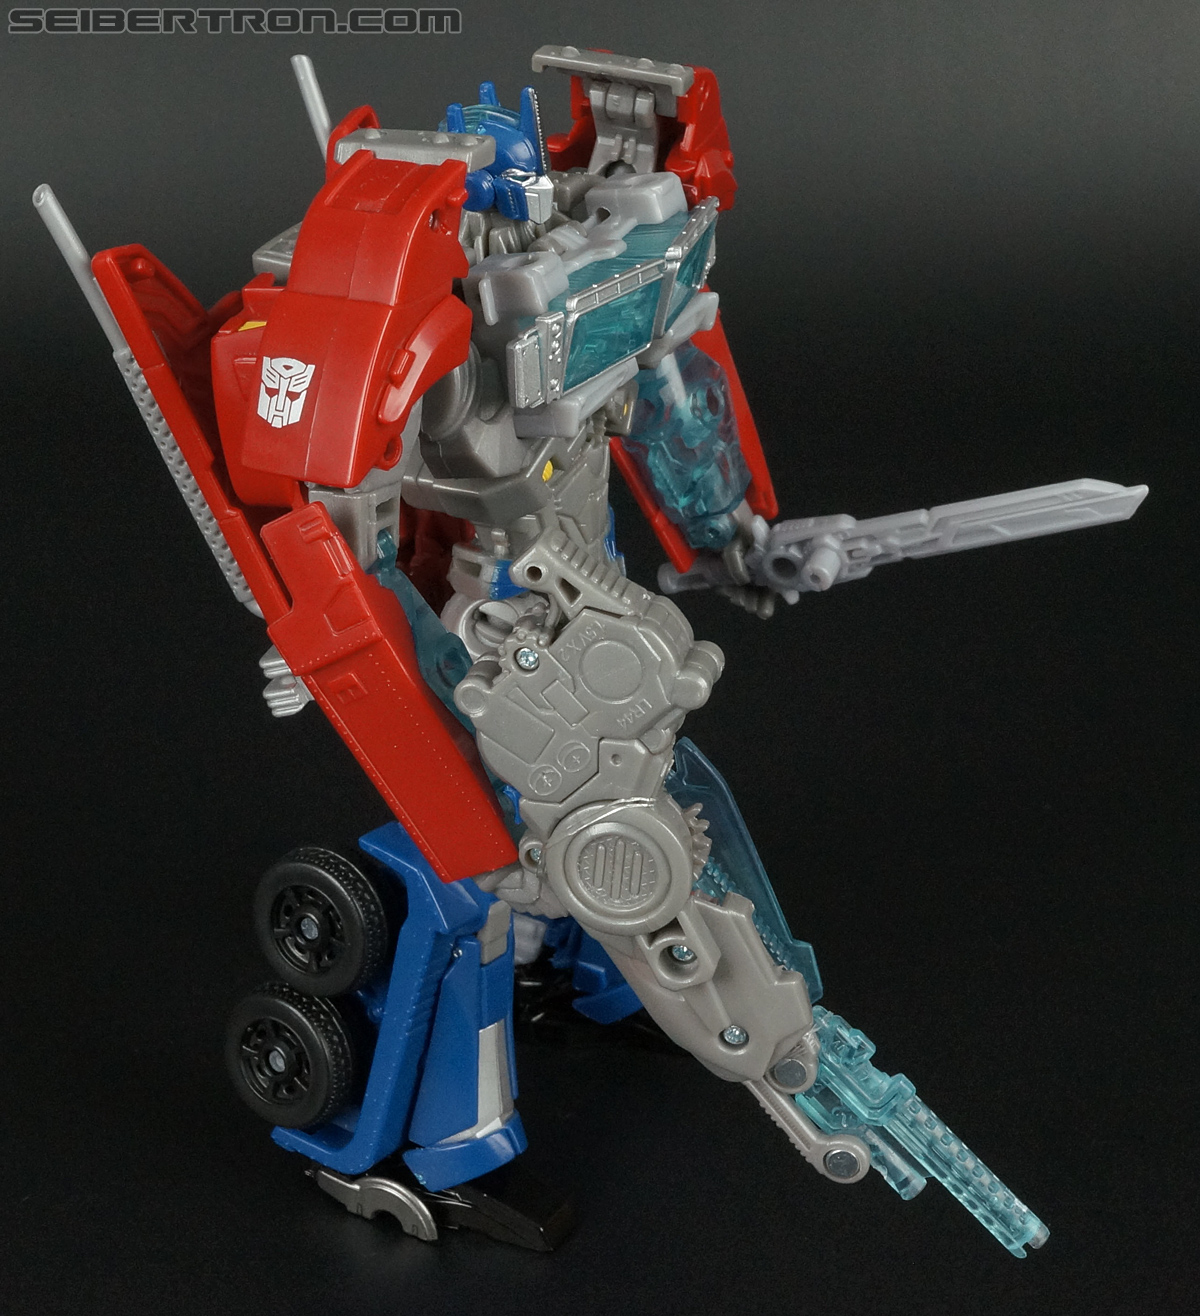 Transformers Prime: Robots In Disguise Optimus Prime (Image #96 of 176)